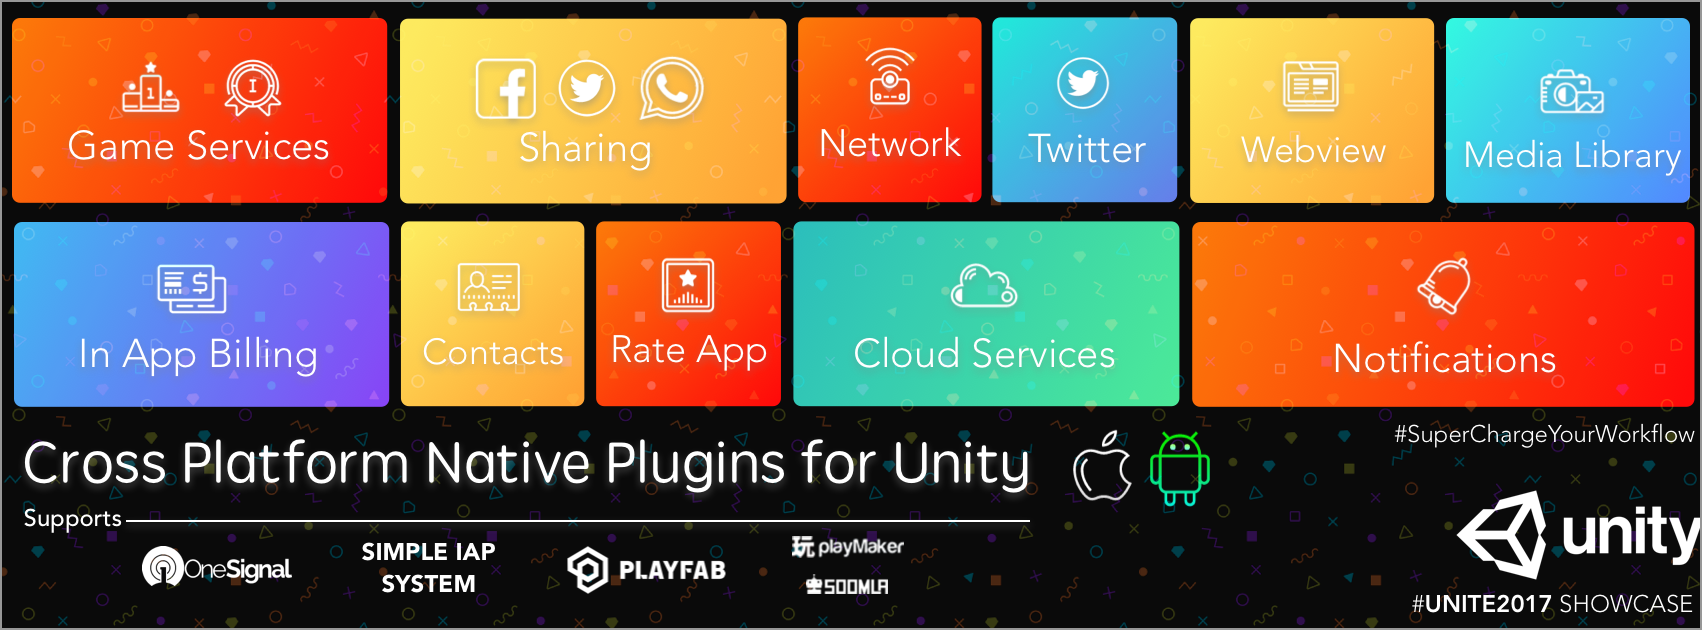 Cross Platform Native Plugins